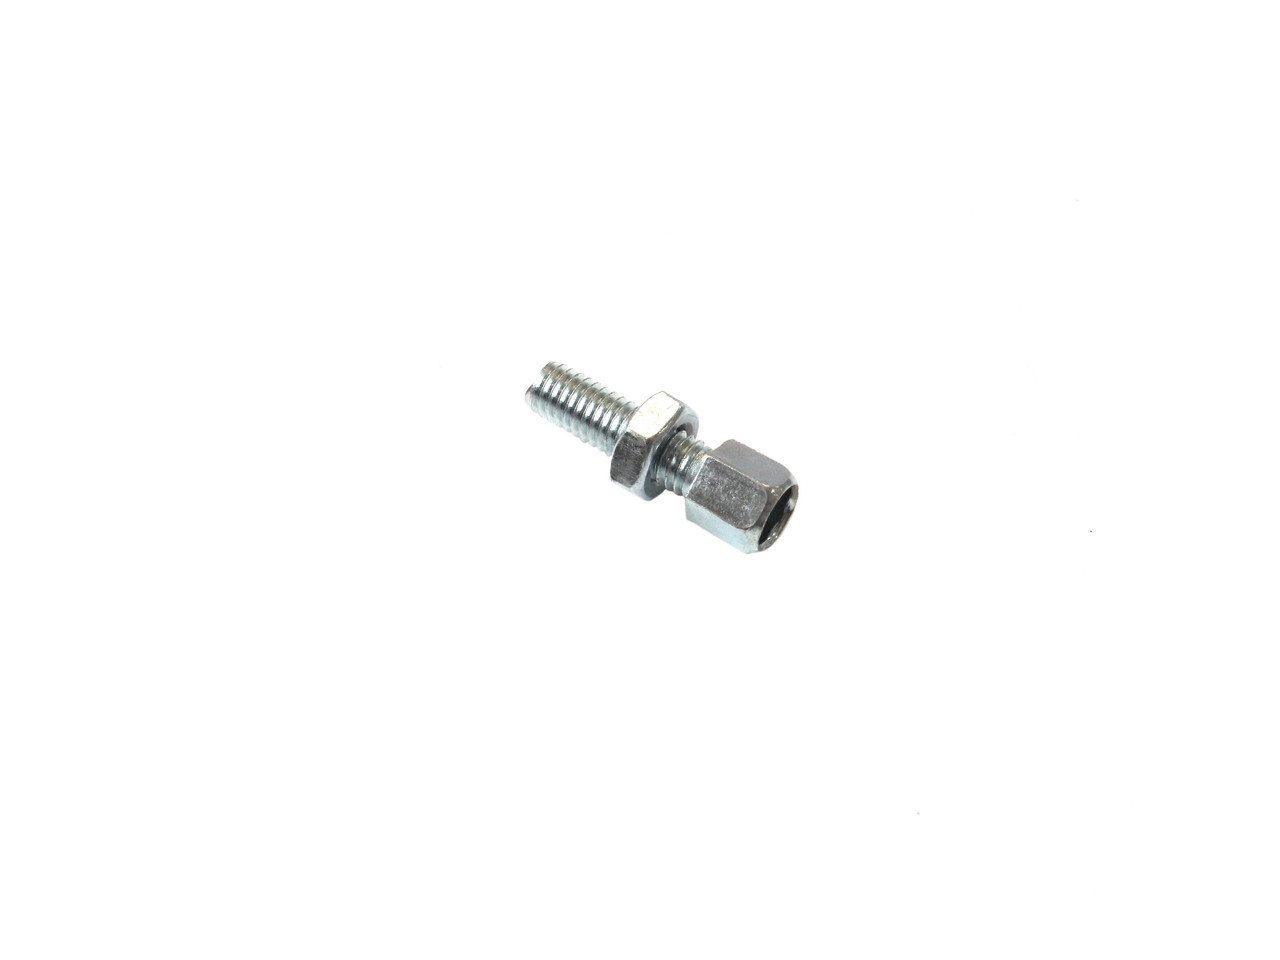 Cable Adjuster M6 X 20mm Threading - No Slot *Sold Each*